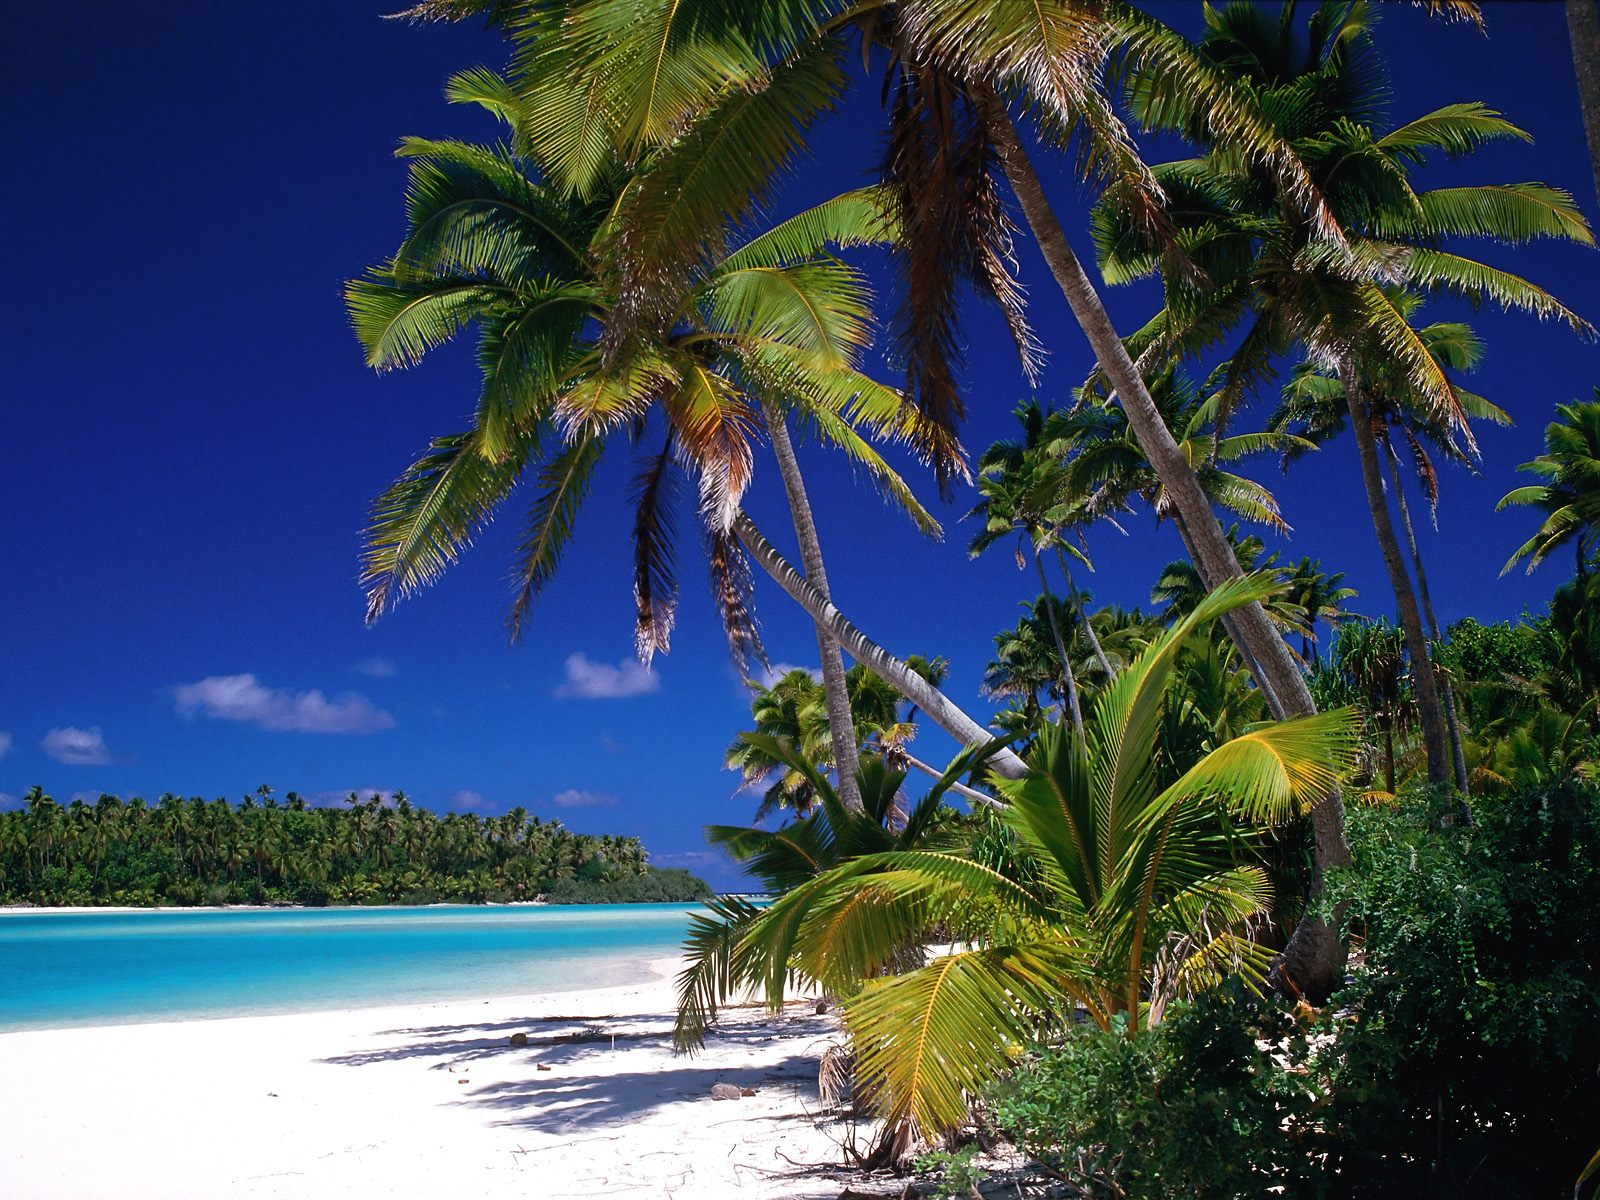 Beautiful Wallpapers For Desktop Palm tree wallpapers hd 1600x1200